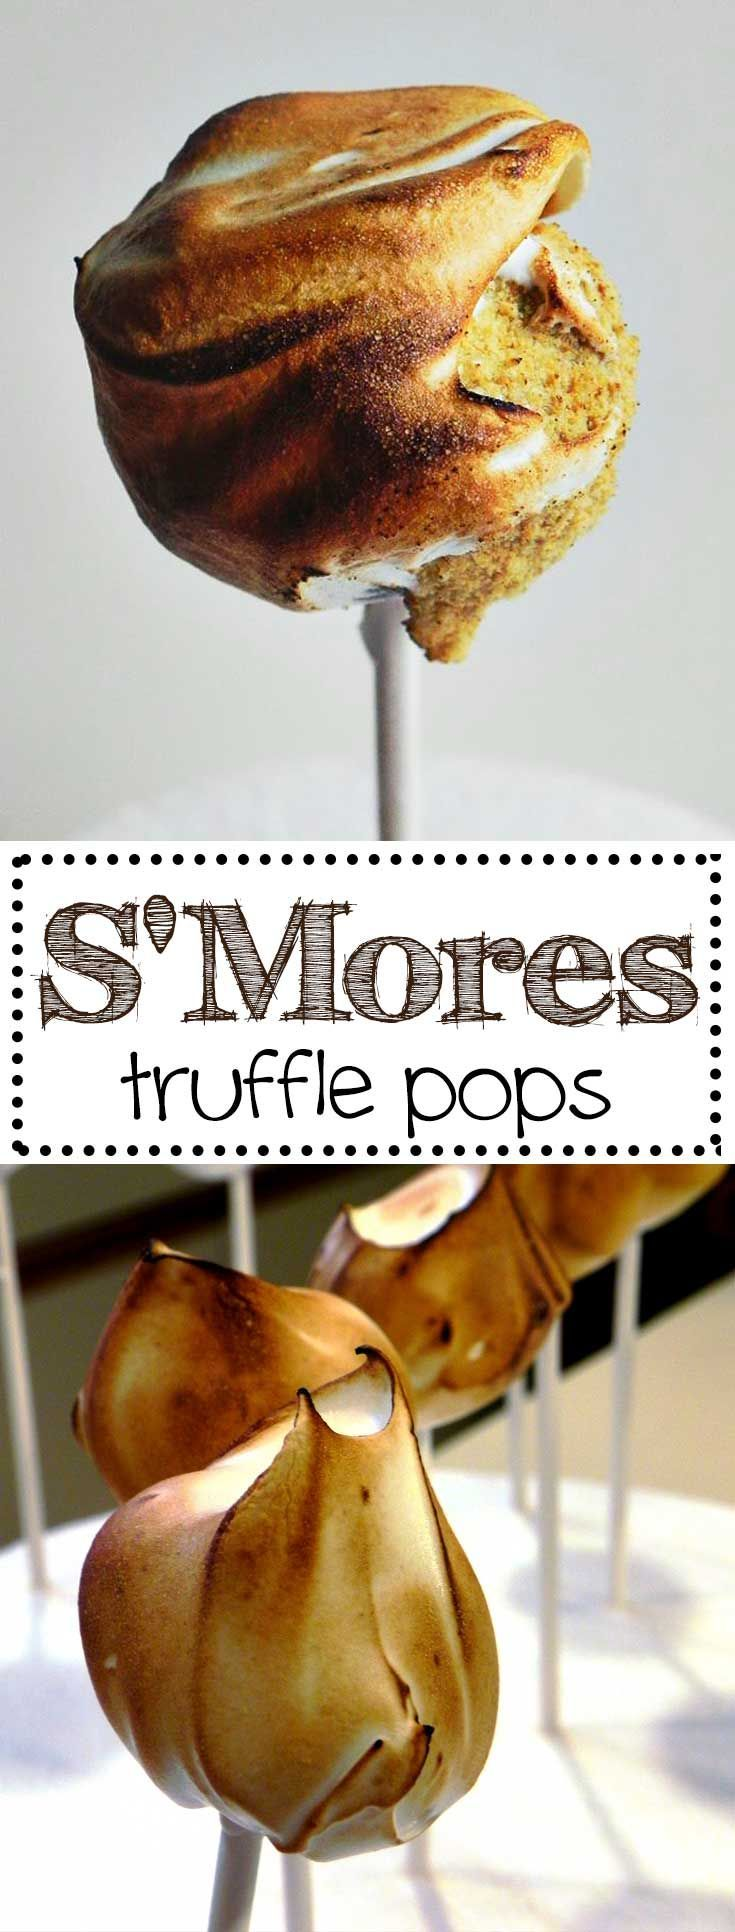 This recipe for S'Mores Truffle Pops will make you the star of the party! They are everything you remember from around the campfire in a tiny bite sized dessert sure to wow your guests! via /karascakes/